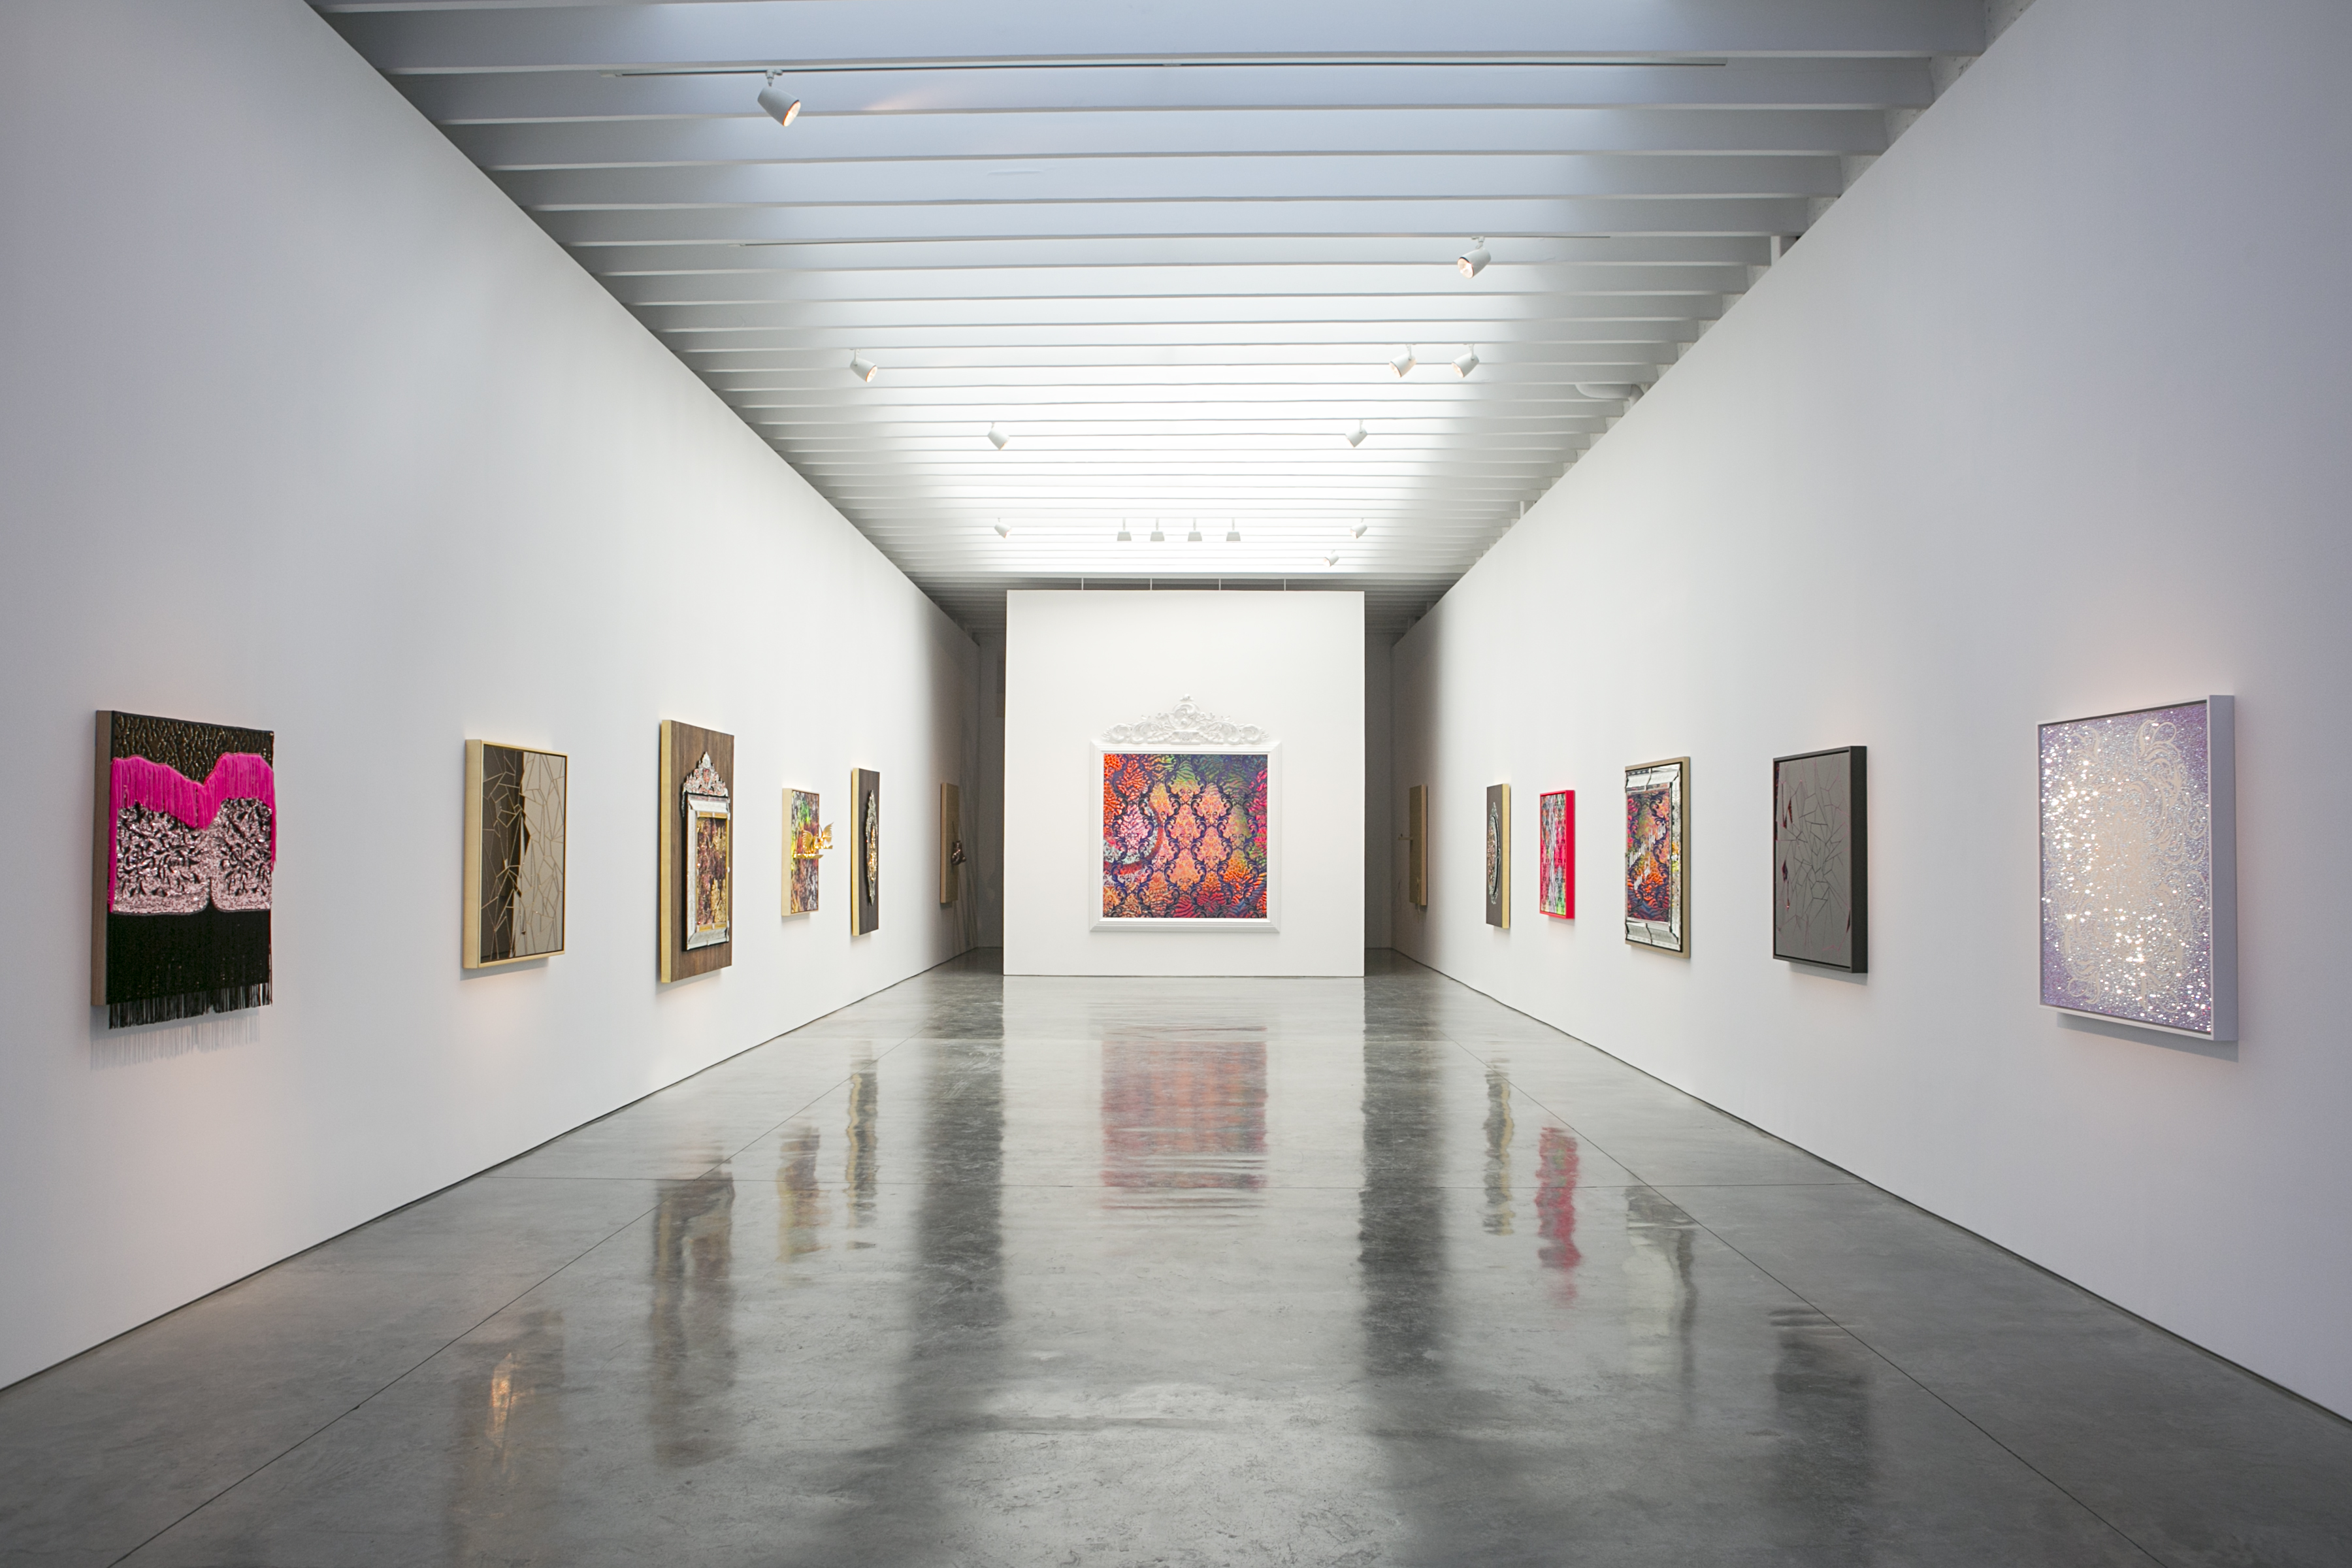 Installation images: Courtesy of the artist and Paul Kasmin Gallery. Photography by Jeff Elstone